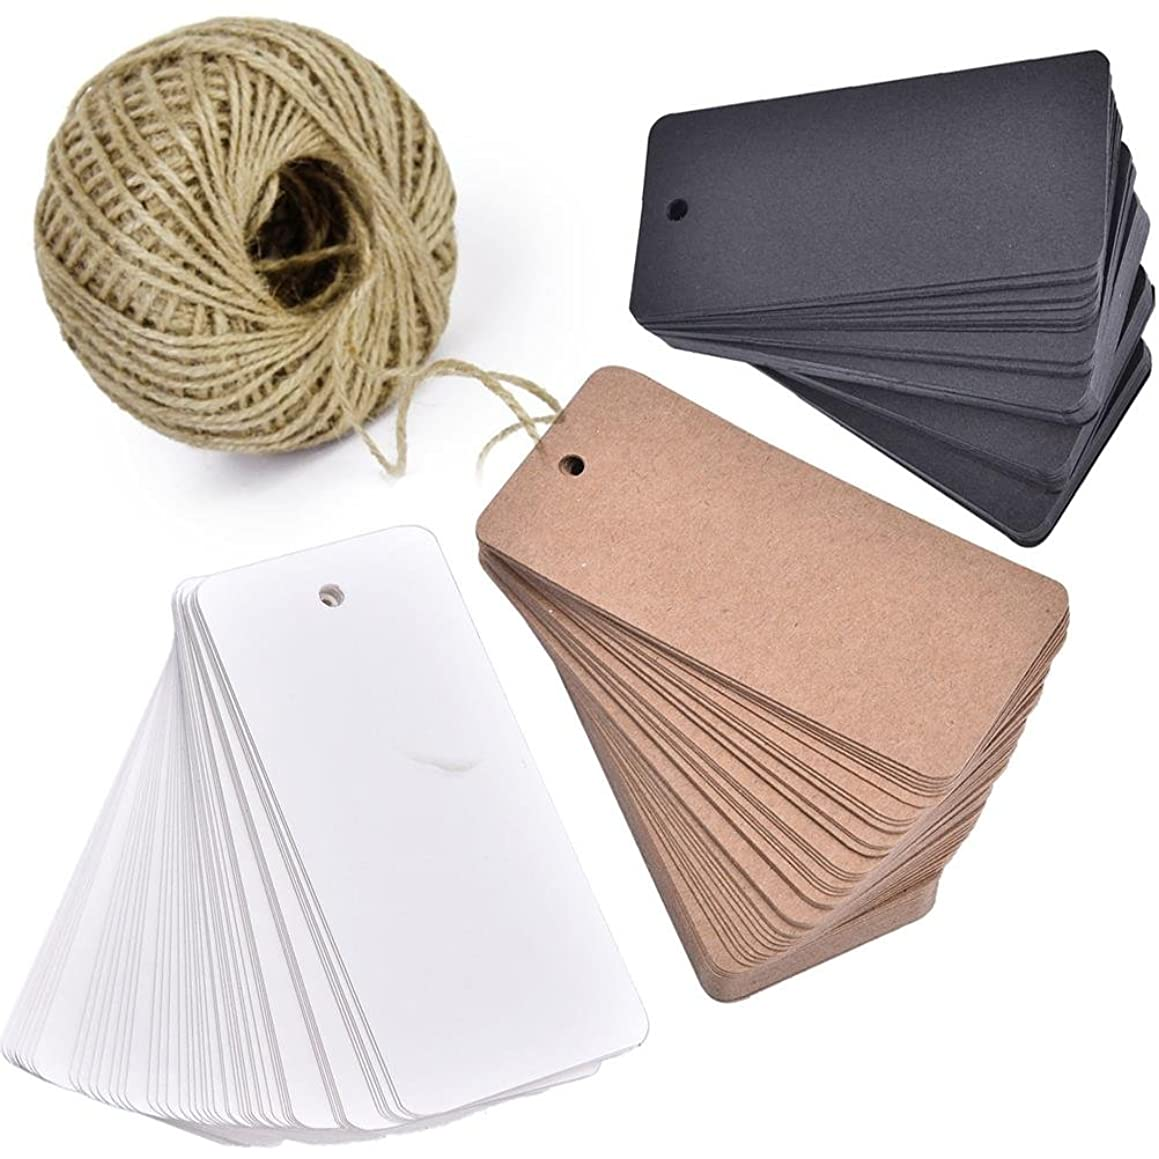 Lwestine 150pcs Kraft Paper Gift Tags, Blank Card with 100 Feet Natural Jute Twine for Crafts & Price Tags Lables (Brown, White, Black)